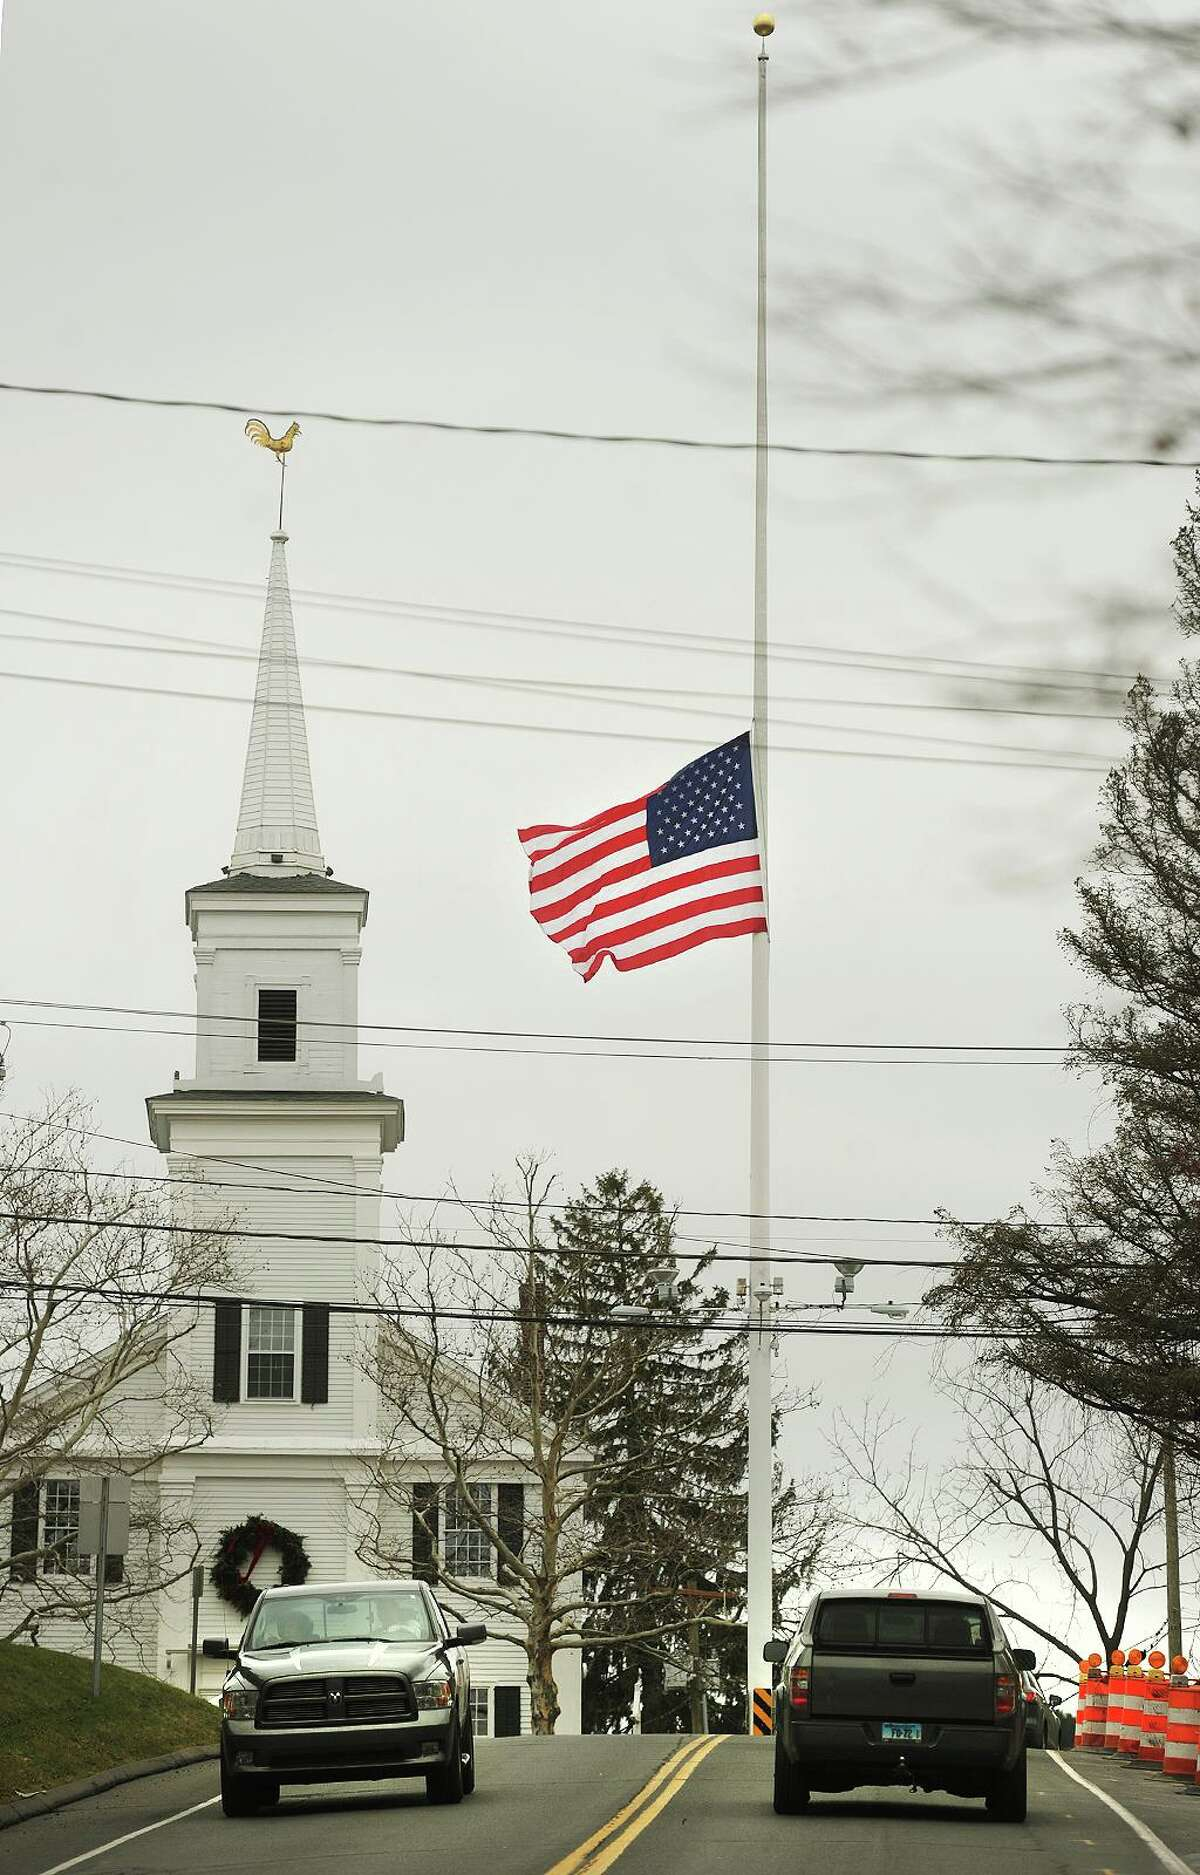 The American flag on the Newtown flagpole at the intersection of Route 25 and Church Hill Road flies at half staff on the second anniversary of the Sandy Hook Elementary School killings in Newtown, Conn.on Sunday, December 14, 2014. During the same episode, a Virginia couple described experiencing similar online harassment as Pozner. Matt and Maatje Benassi were subjects of online harassment, alleging that Maatje Benassi was patient zero in the beginning of the COVID-19 pandemic. They turned to Pozner's HONR Network and with his help, were able to get a COVID-19 conspiracy theorist banned from YouTube. Pozner established the HONR Network in 2014, as a nonprofit that protects